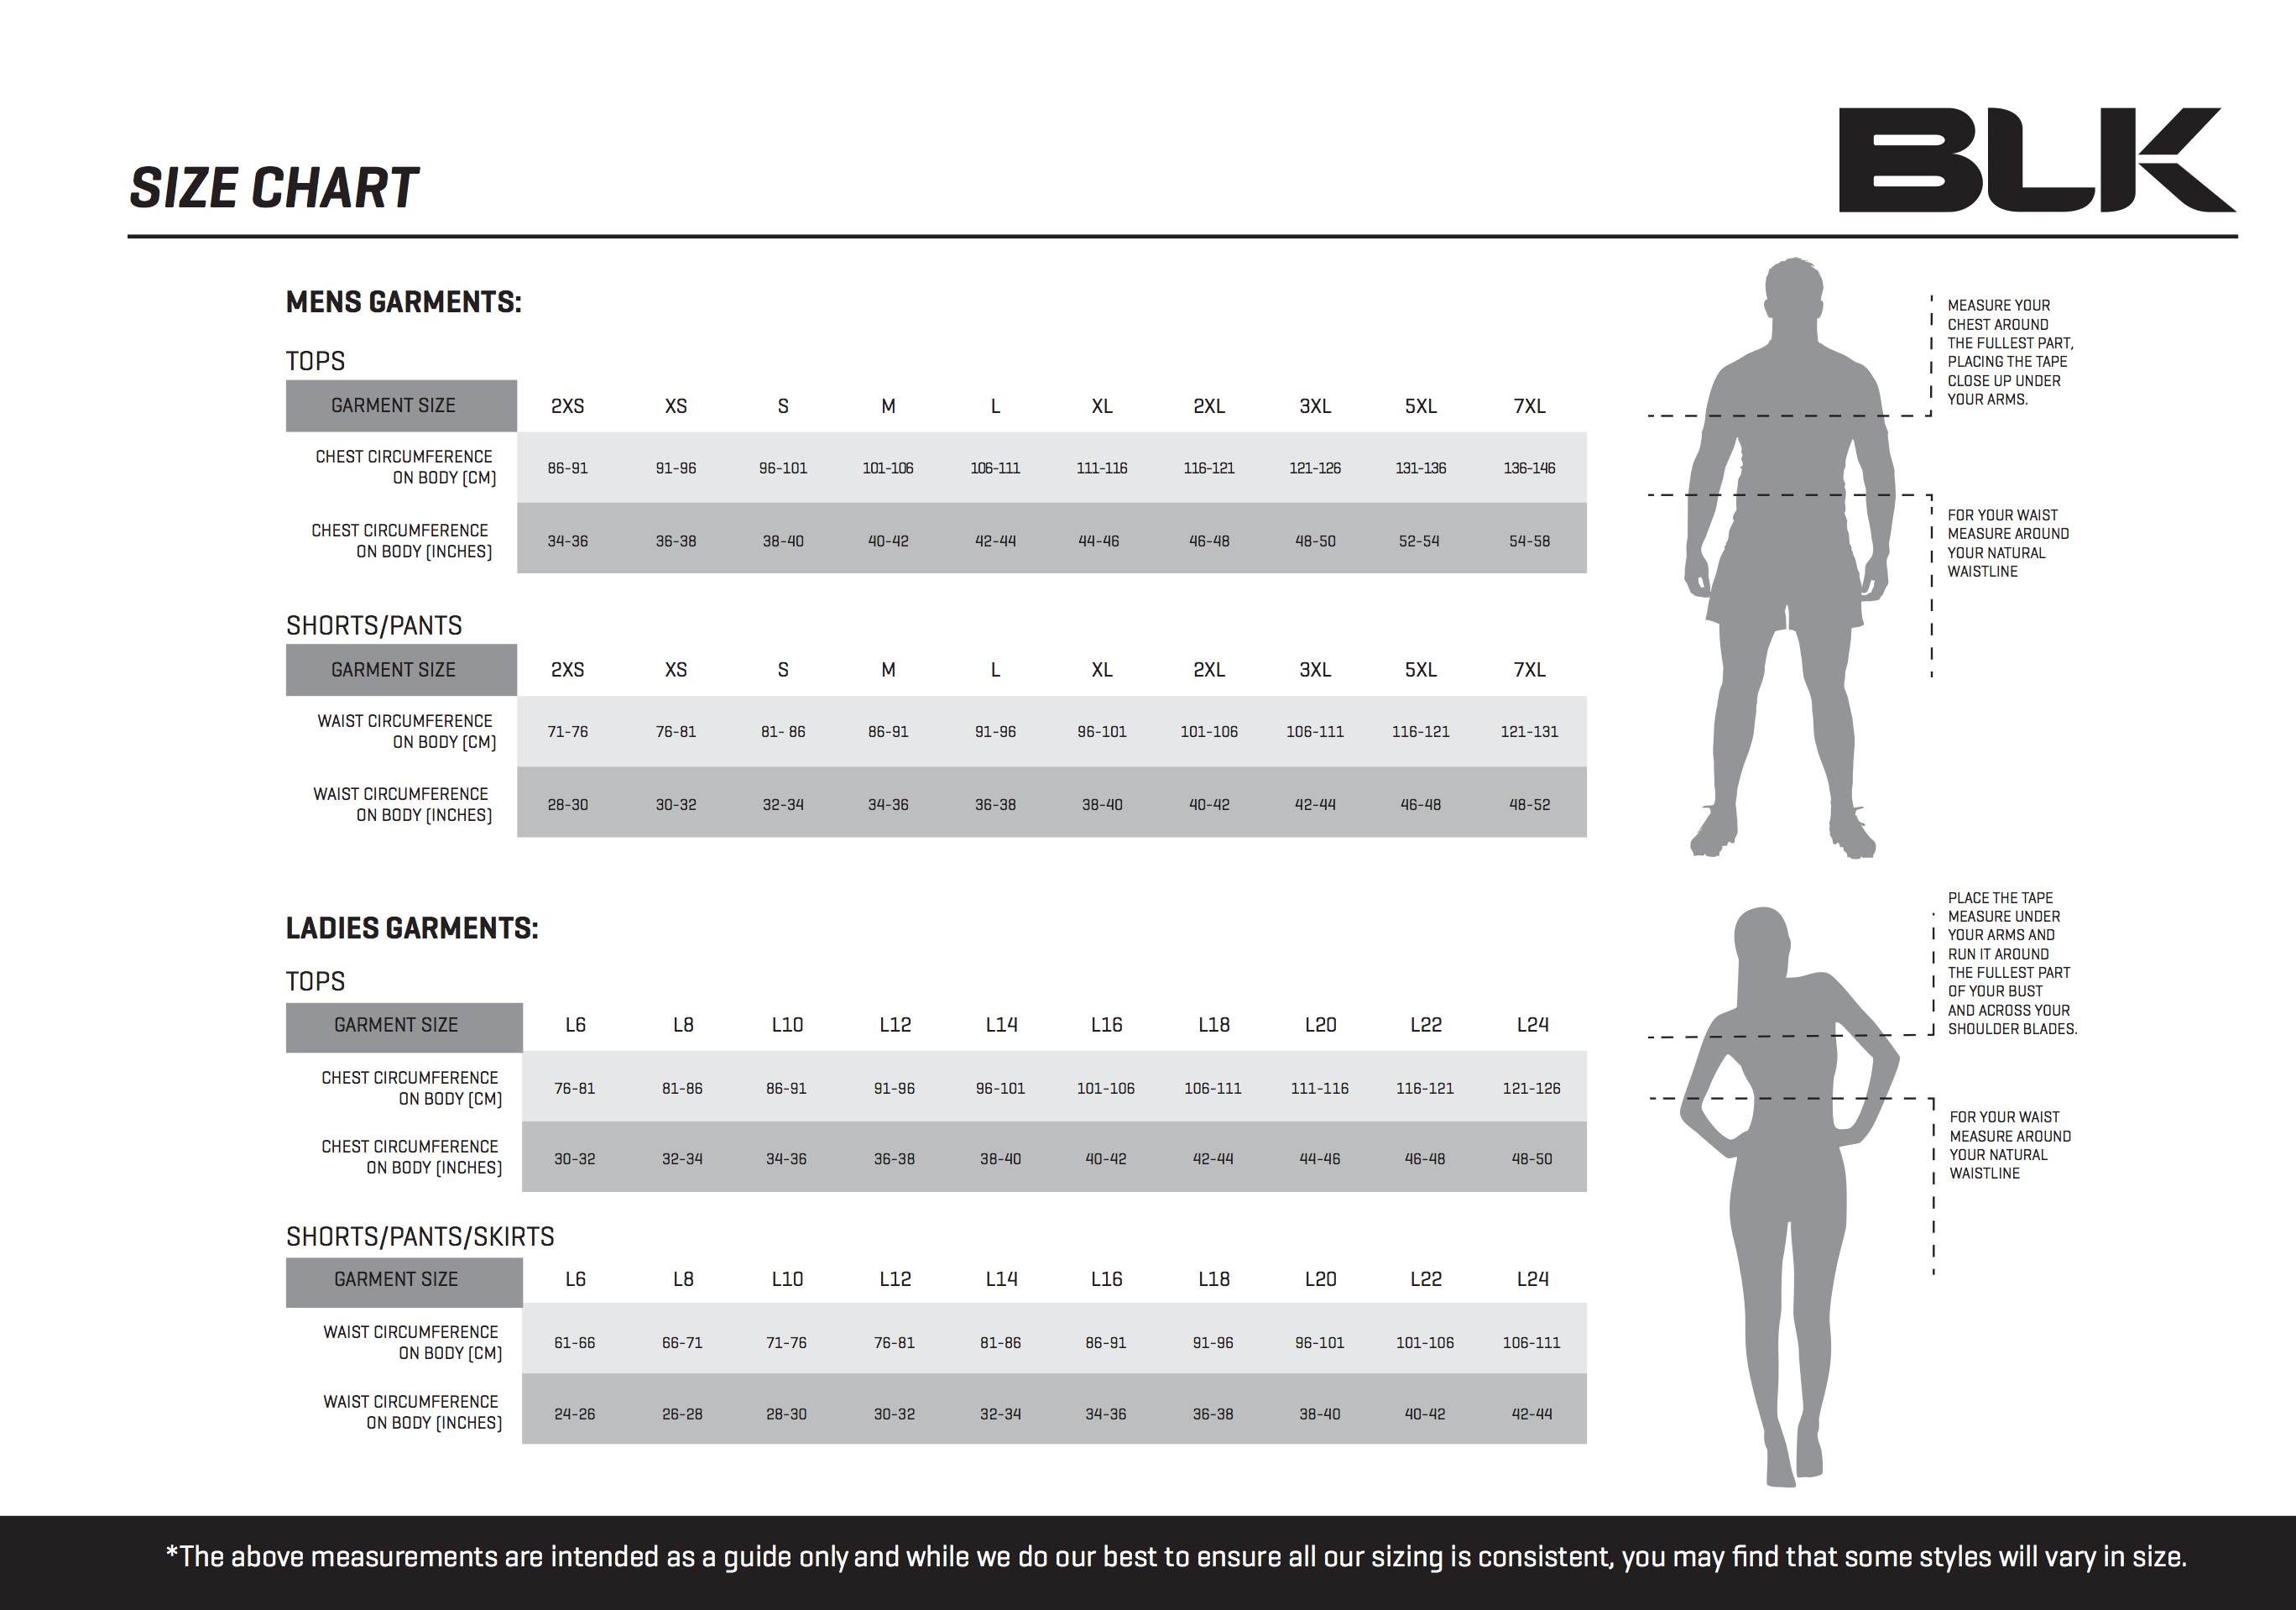 BLK size charts